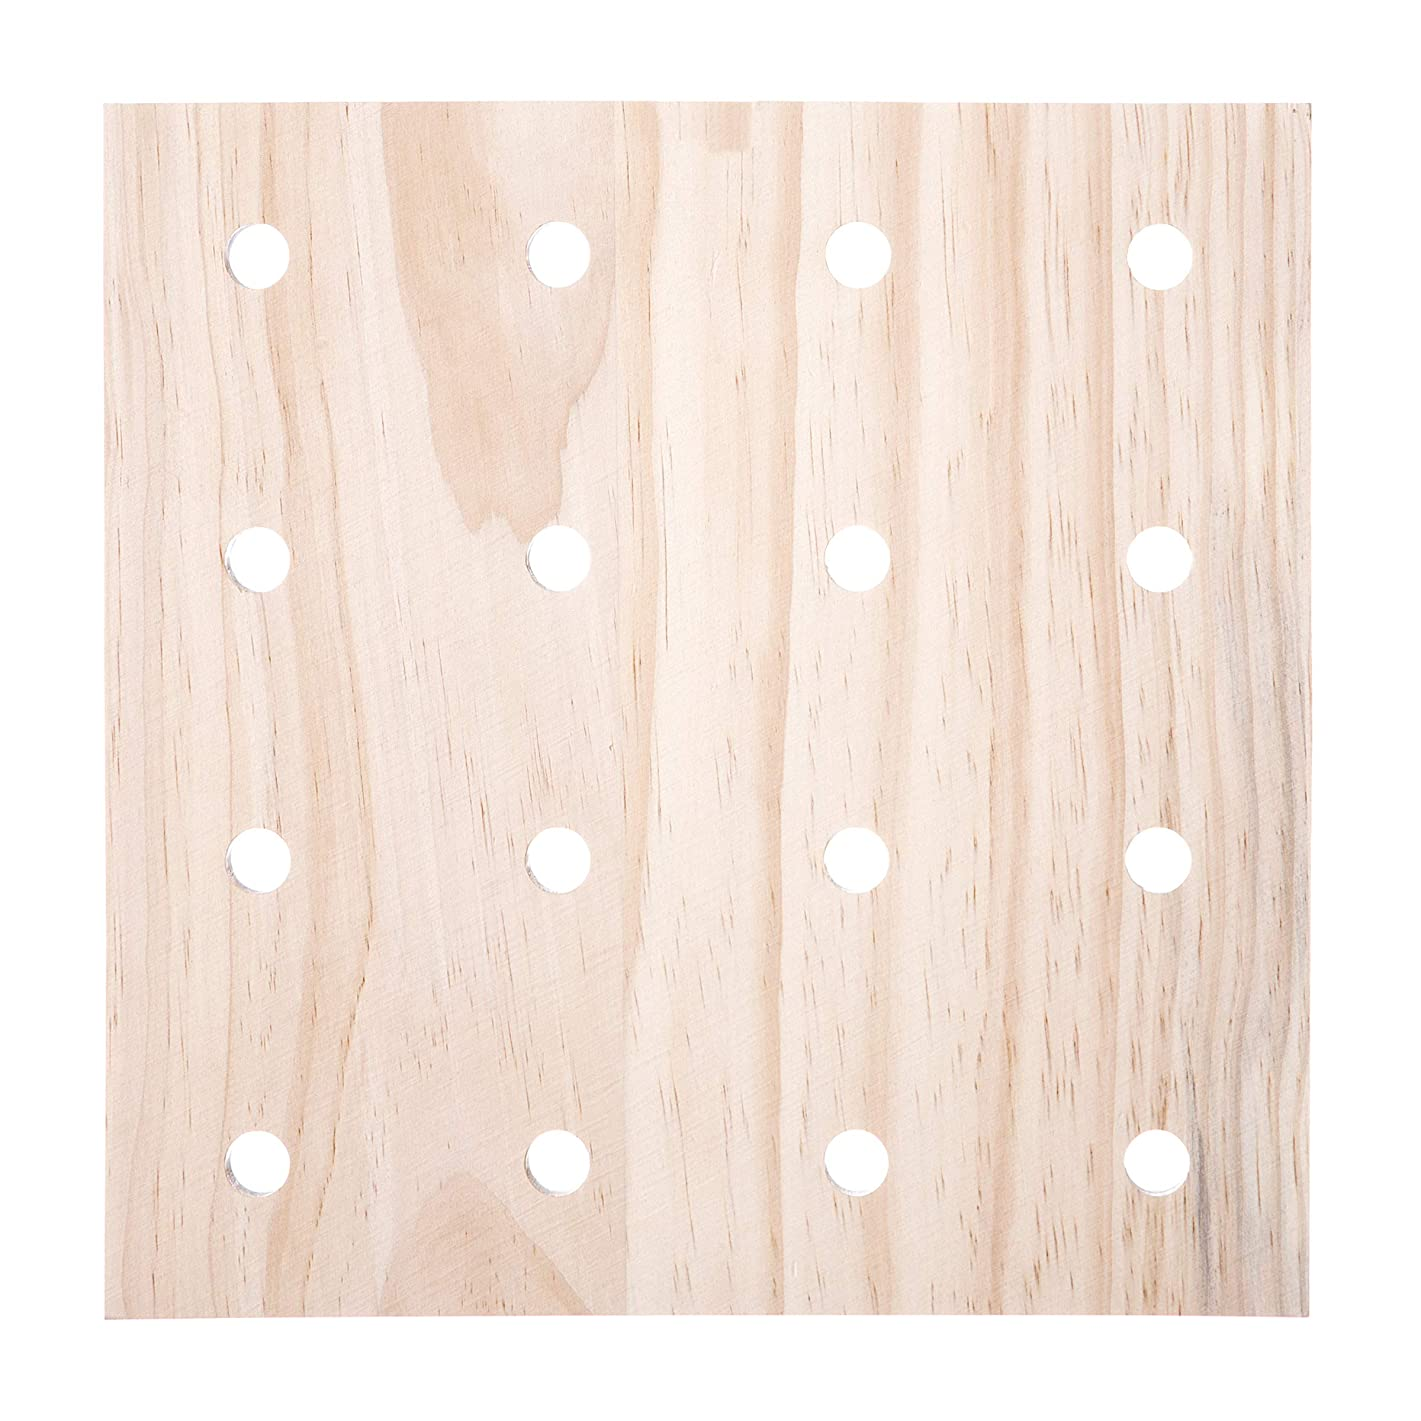 Darice 30053052 System: Wooden Pegboard Base, Unfinished, 12 x 12 Inches, Natural